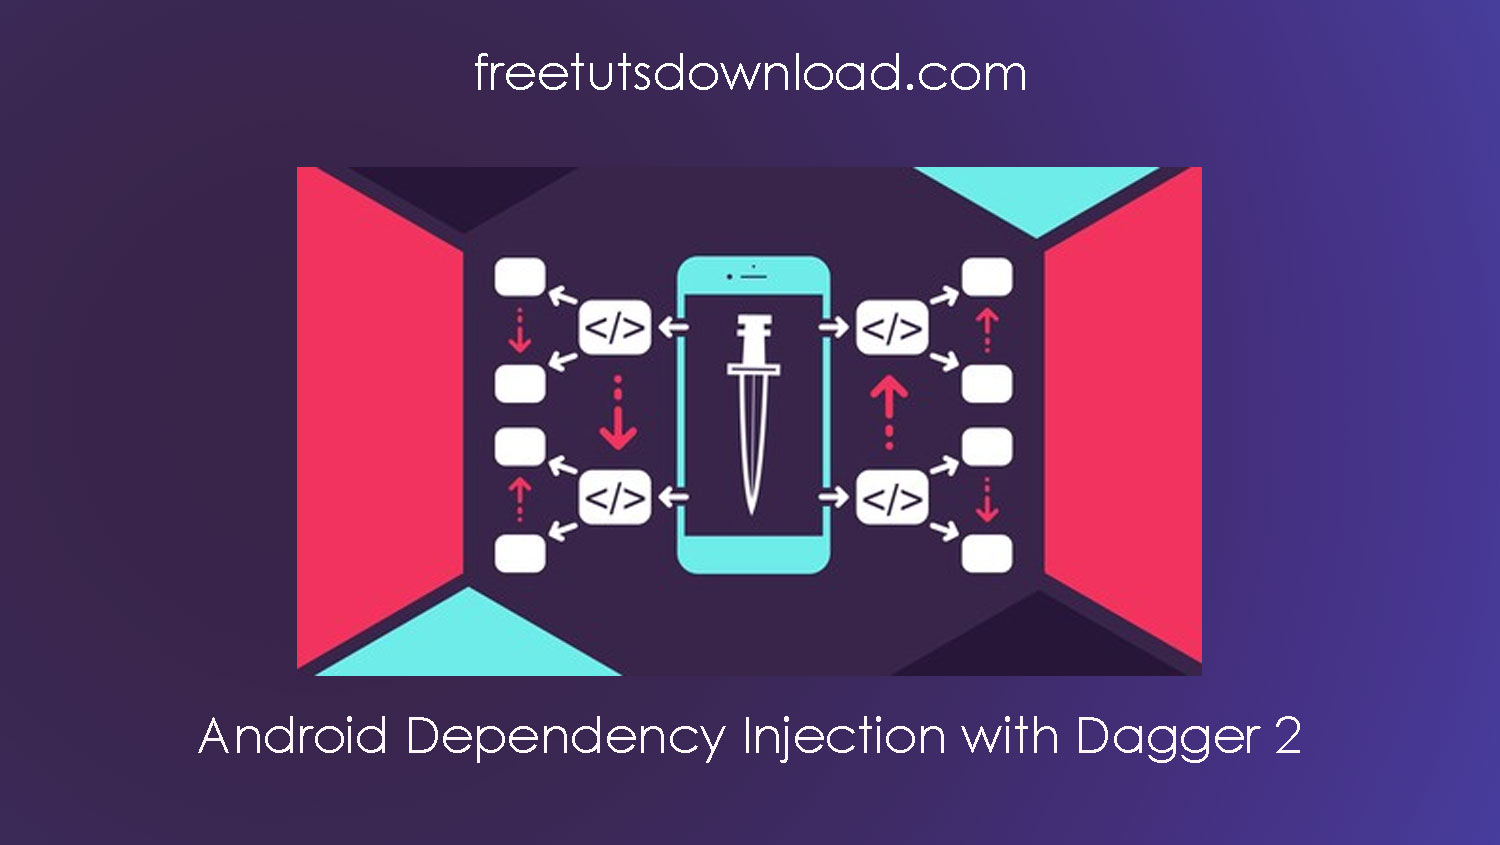 Android Dependency Injection with Dagger 2 Free Download